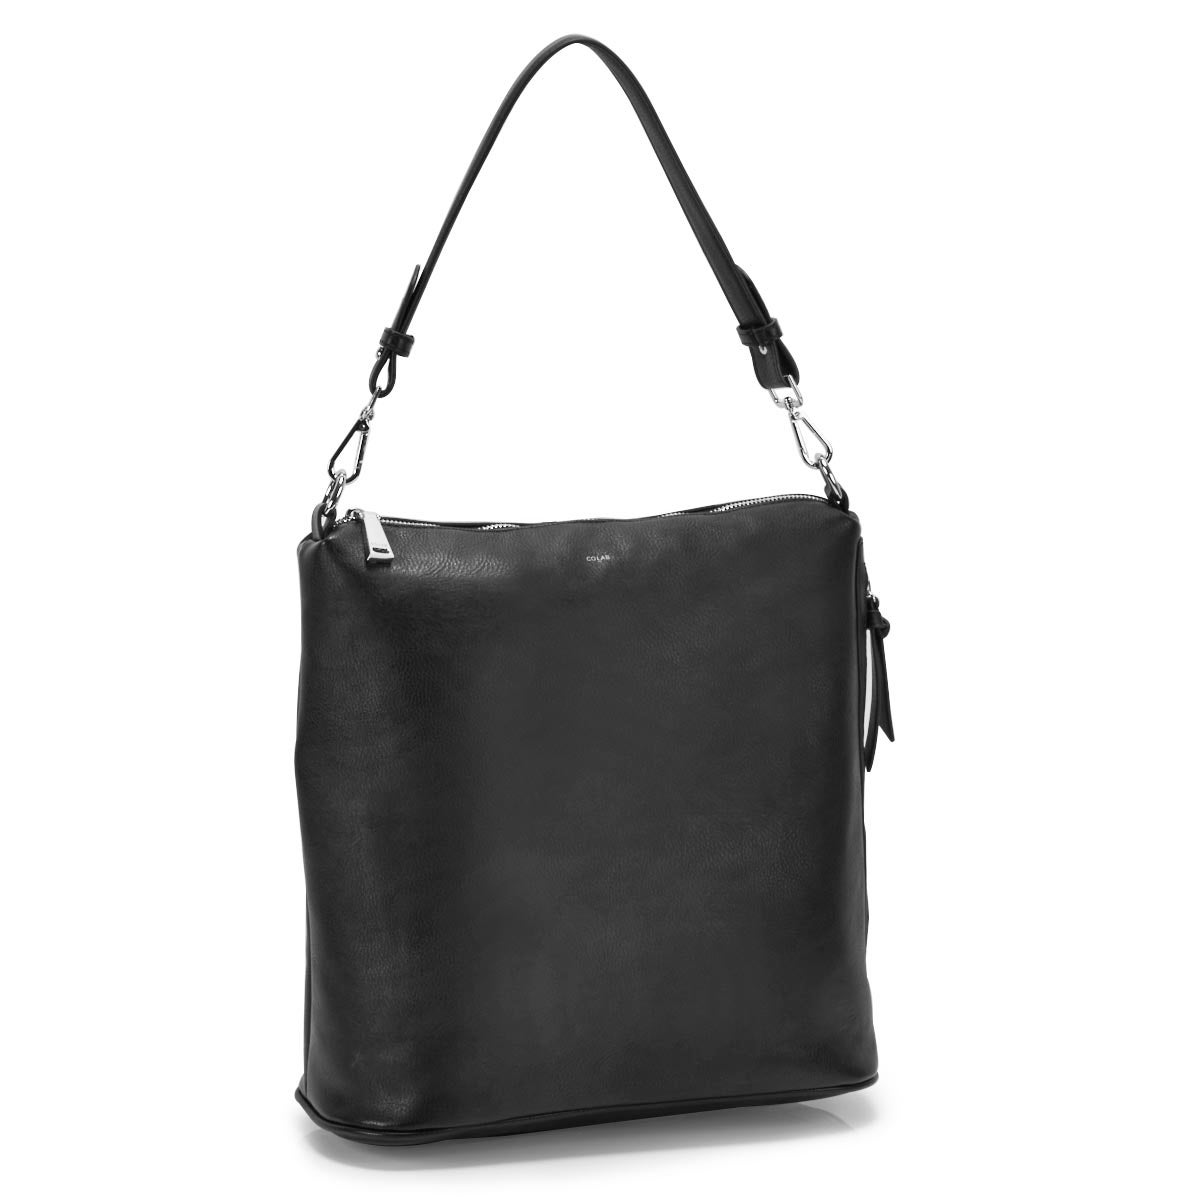 Lds black convertible hobo bag